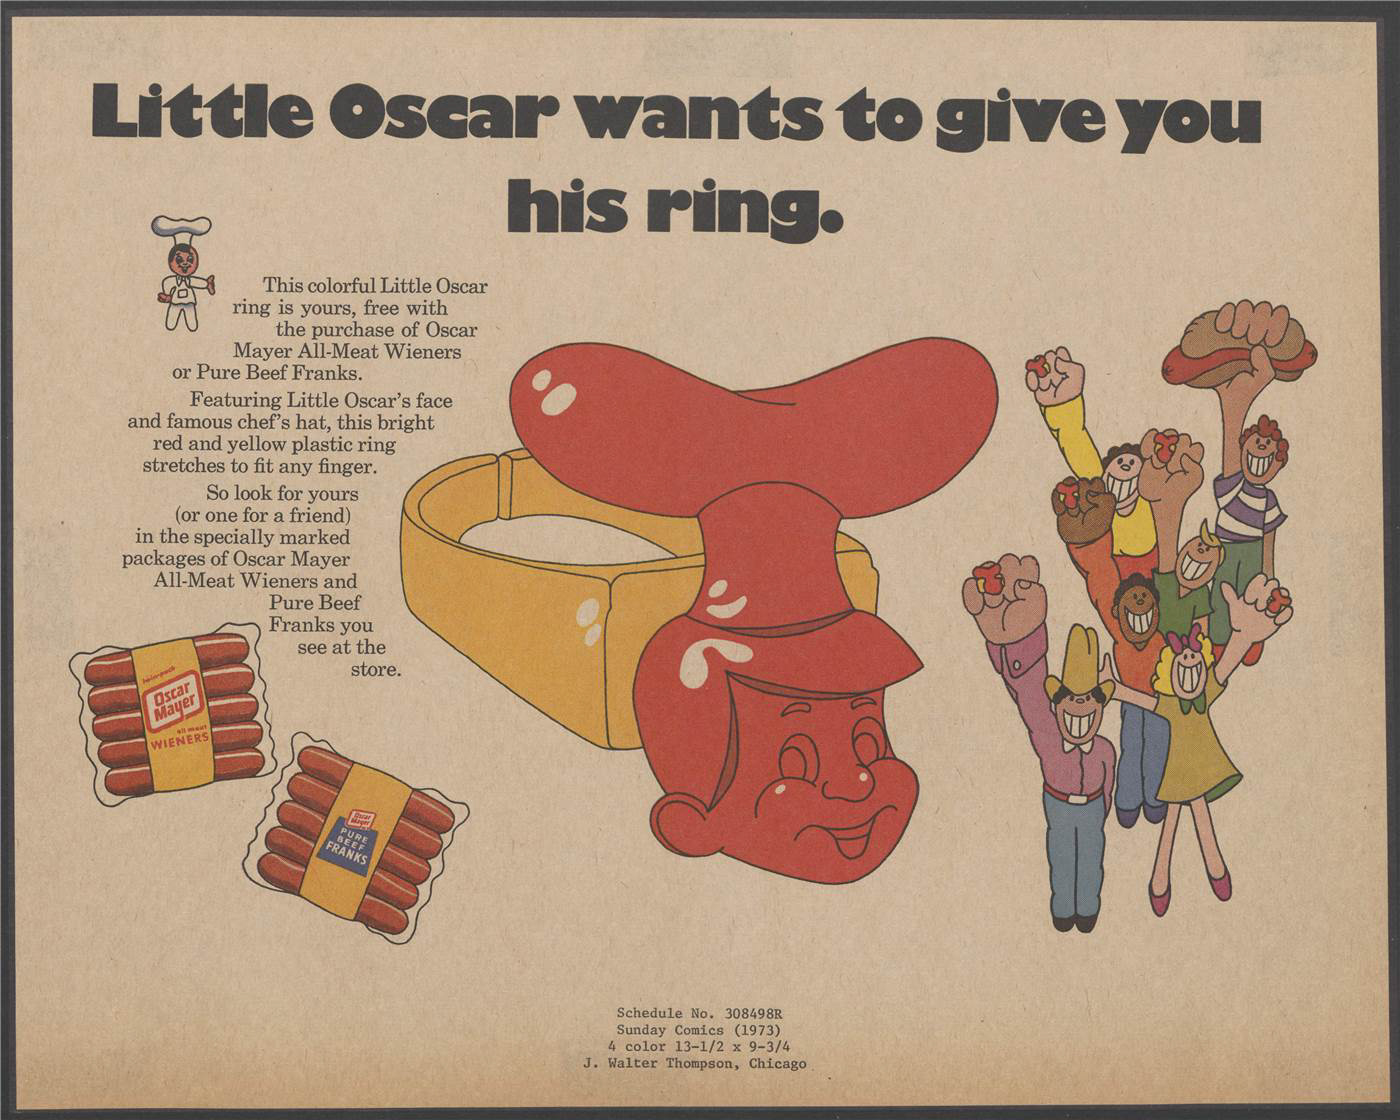 """Little Oscar wants to give you his ring."" Artwork of a ring with the face of Little Oscar with a sausage on his head on it, and people wearing their rings. Text states that the ring comes free with the product."